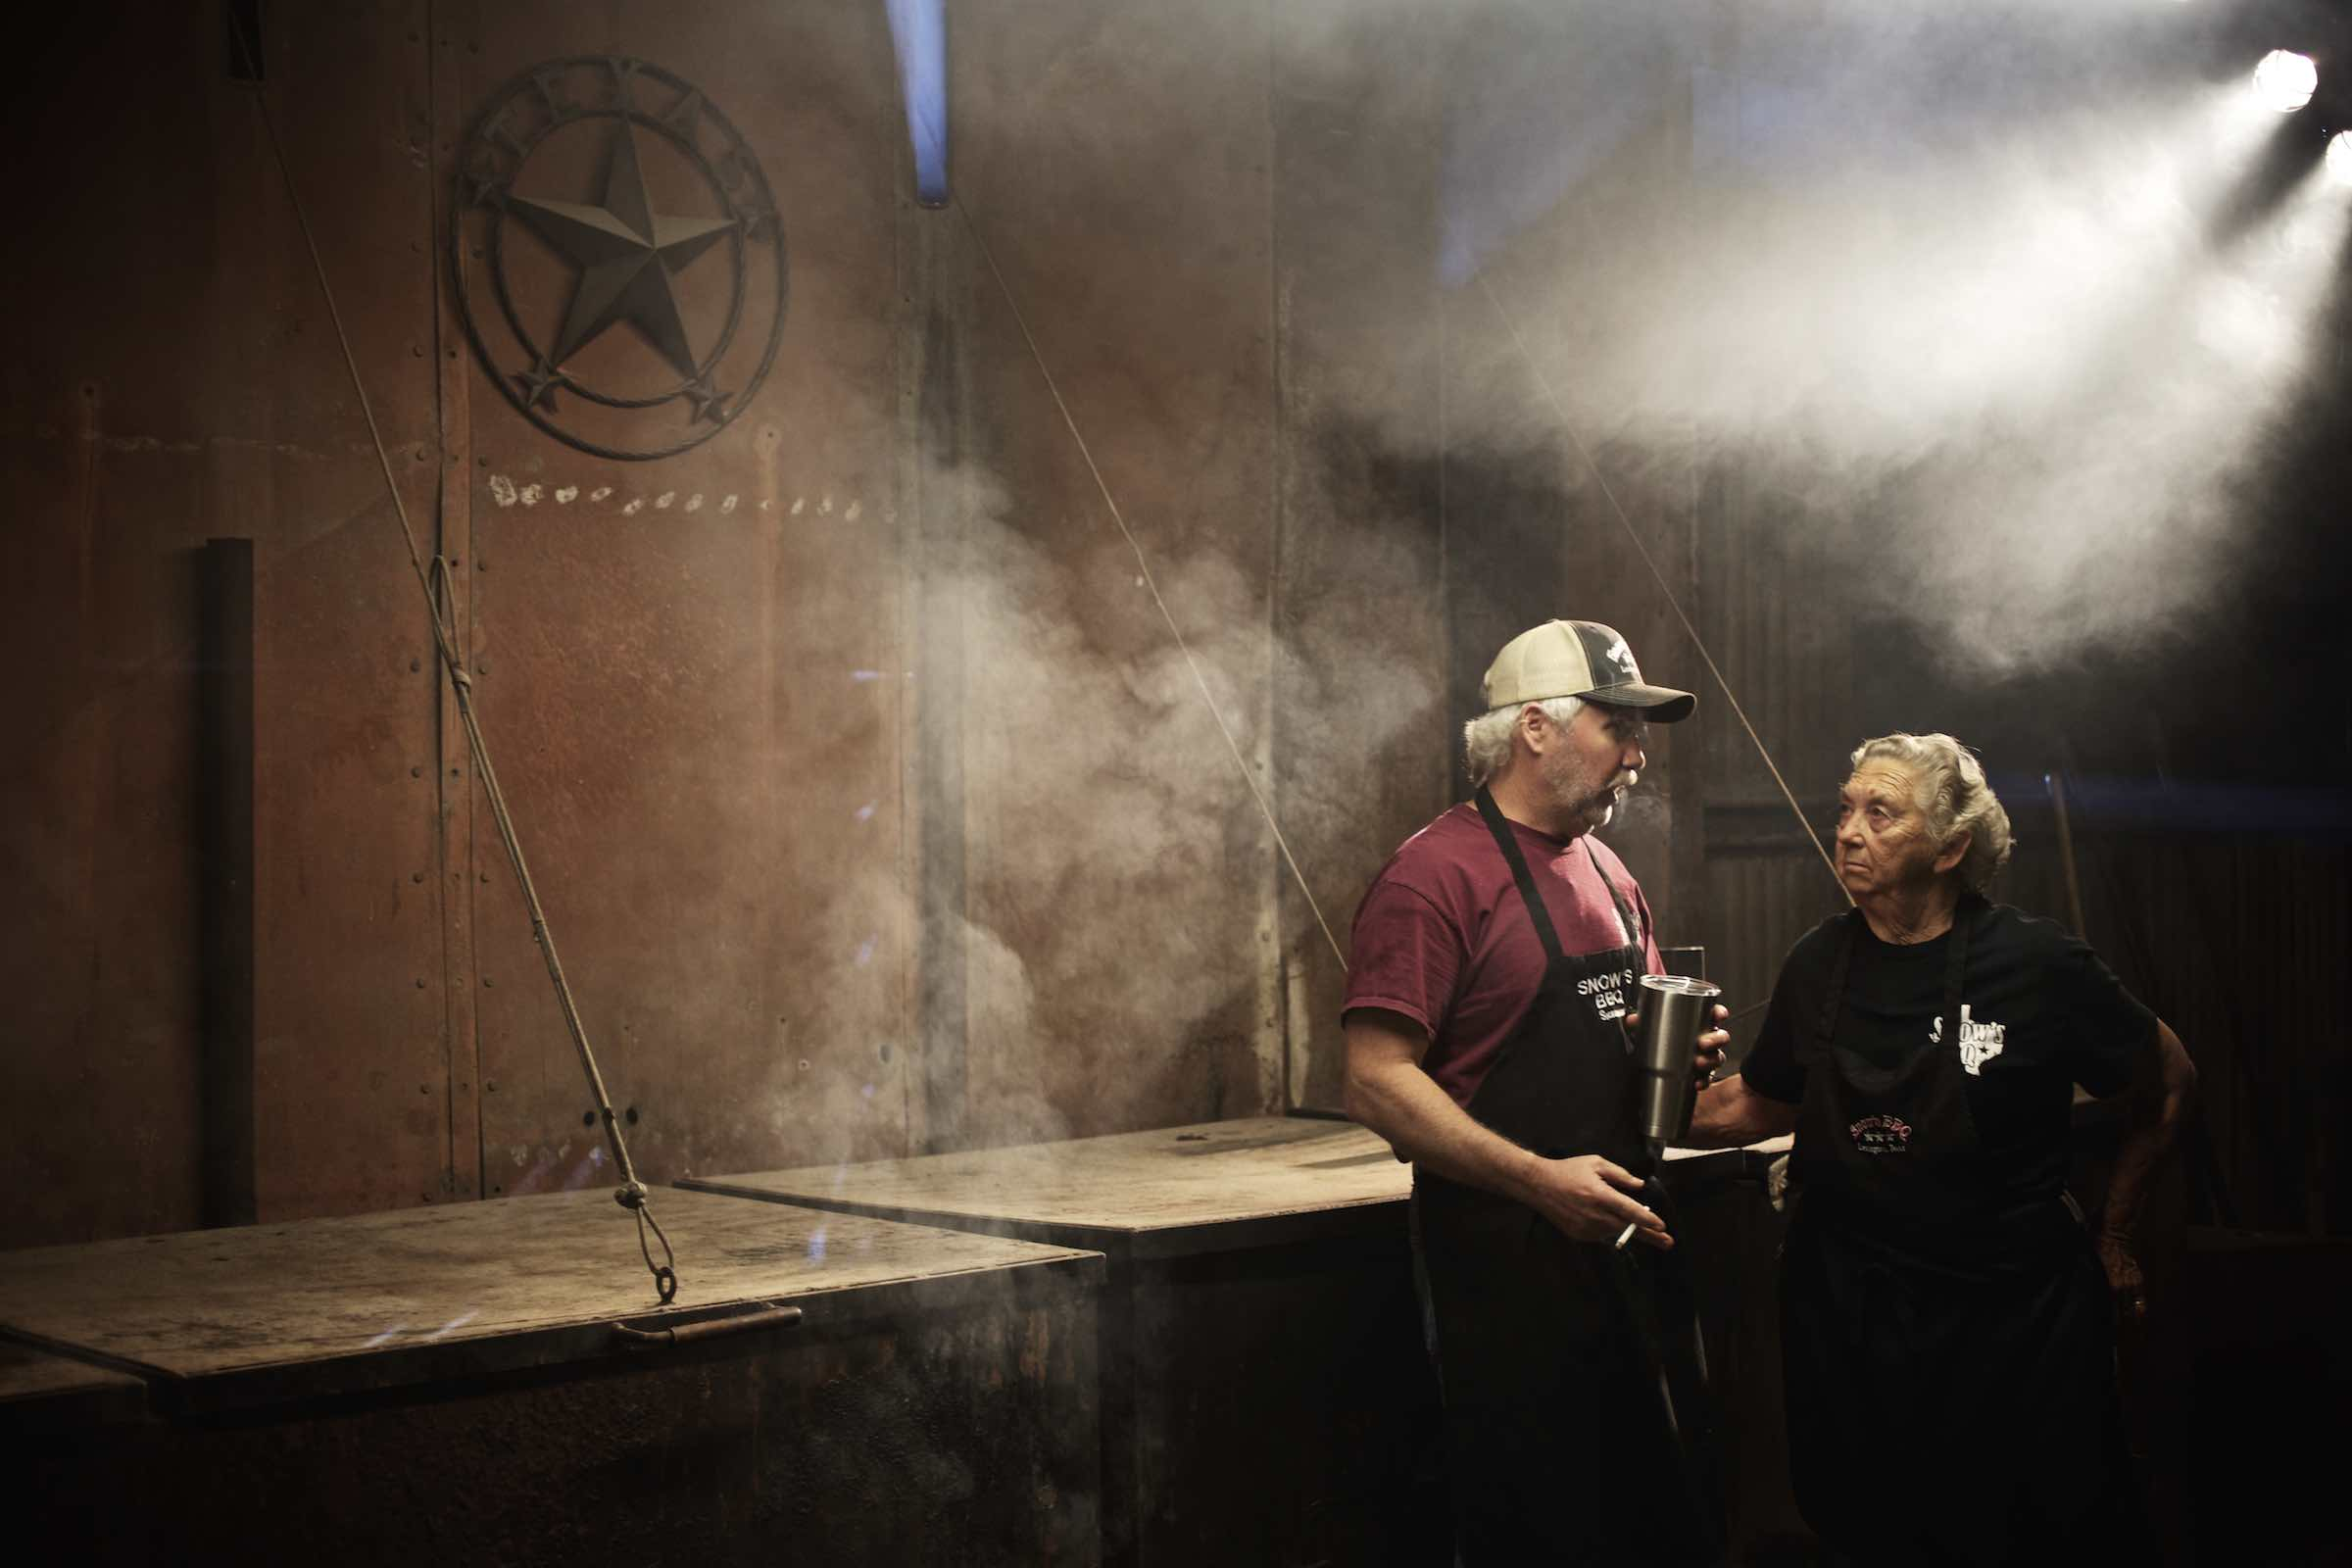 Jody Horton Photography - Pit masters chatting together in the barbecue pit.